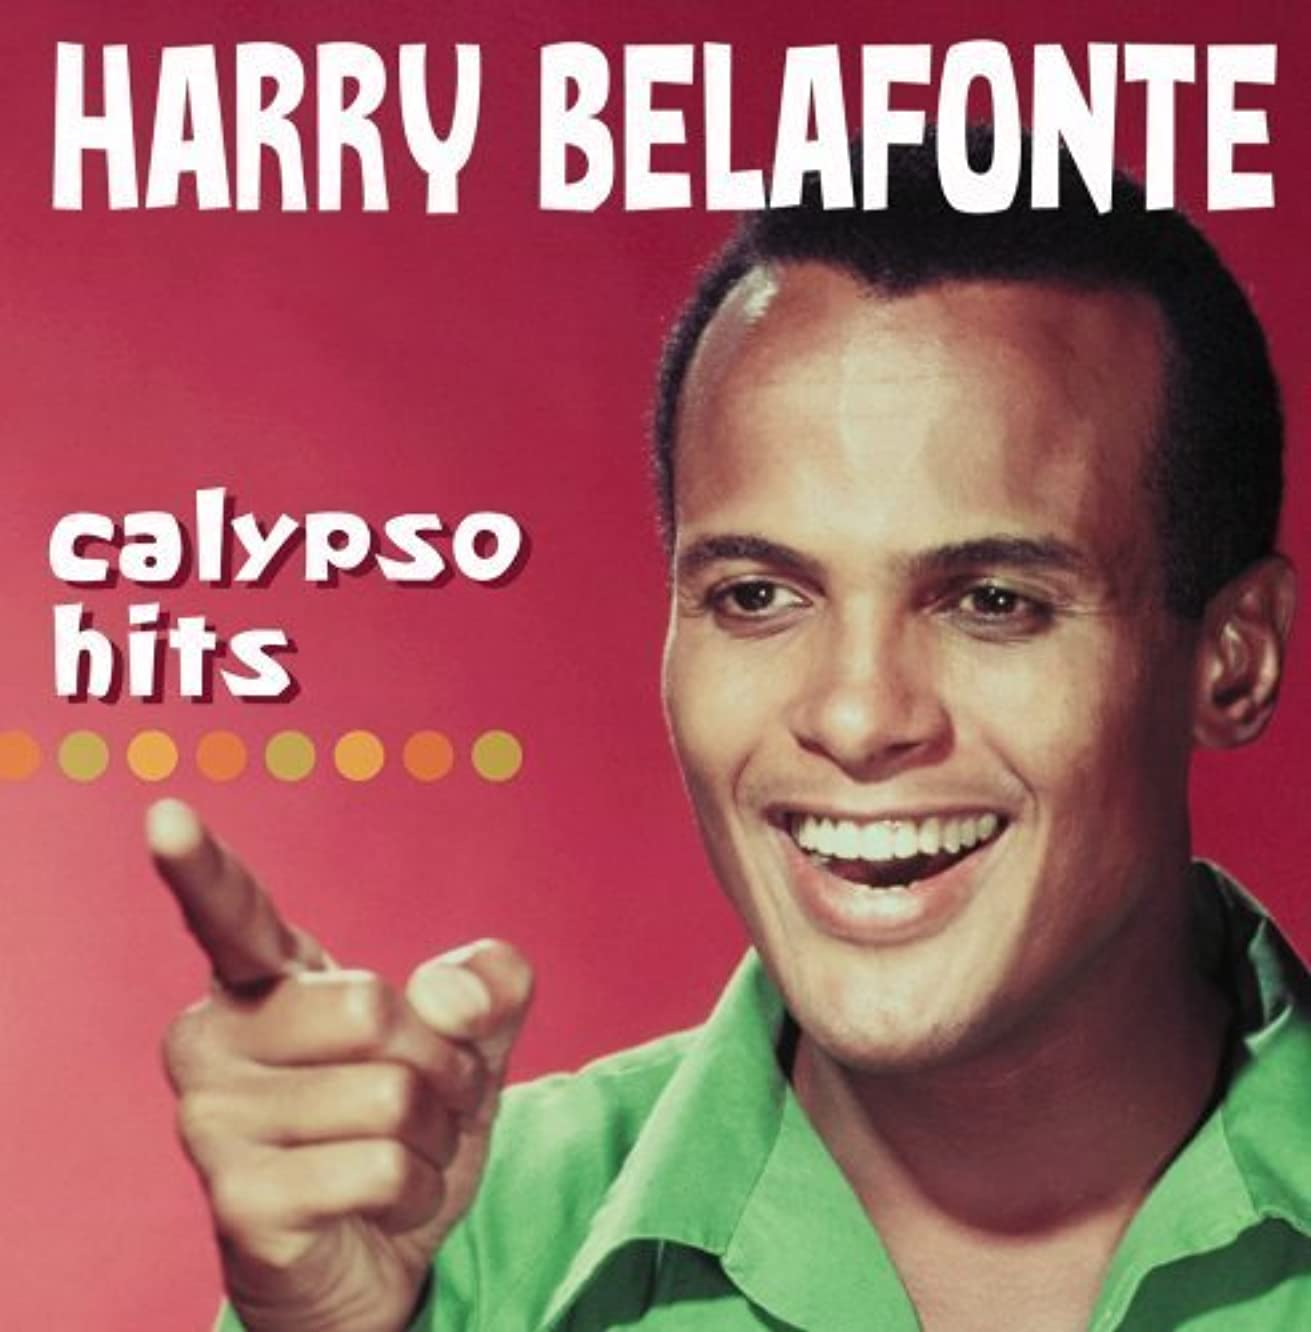 Calypso Hits by Belafonte*Harry